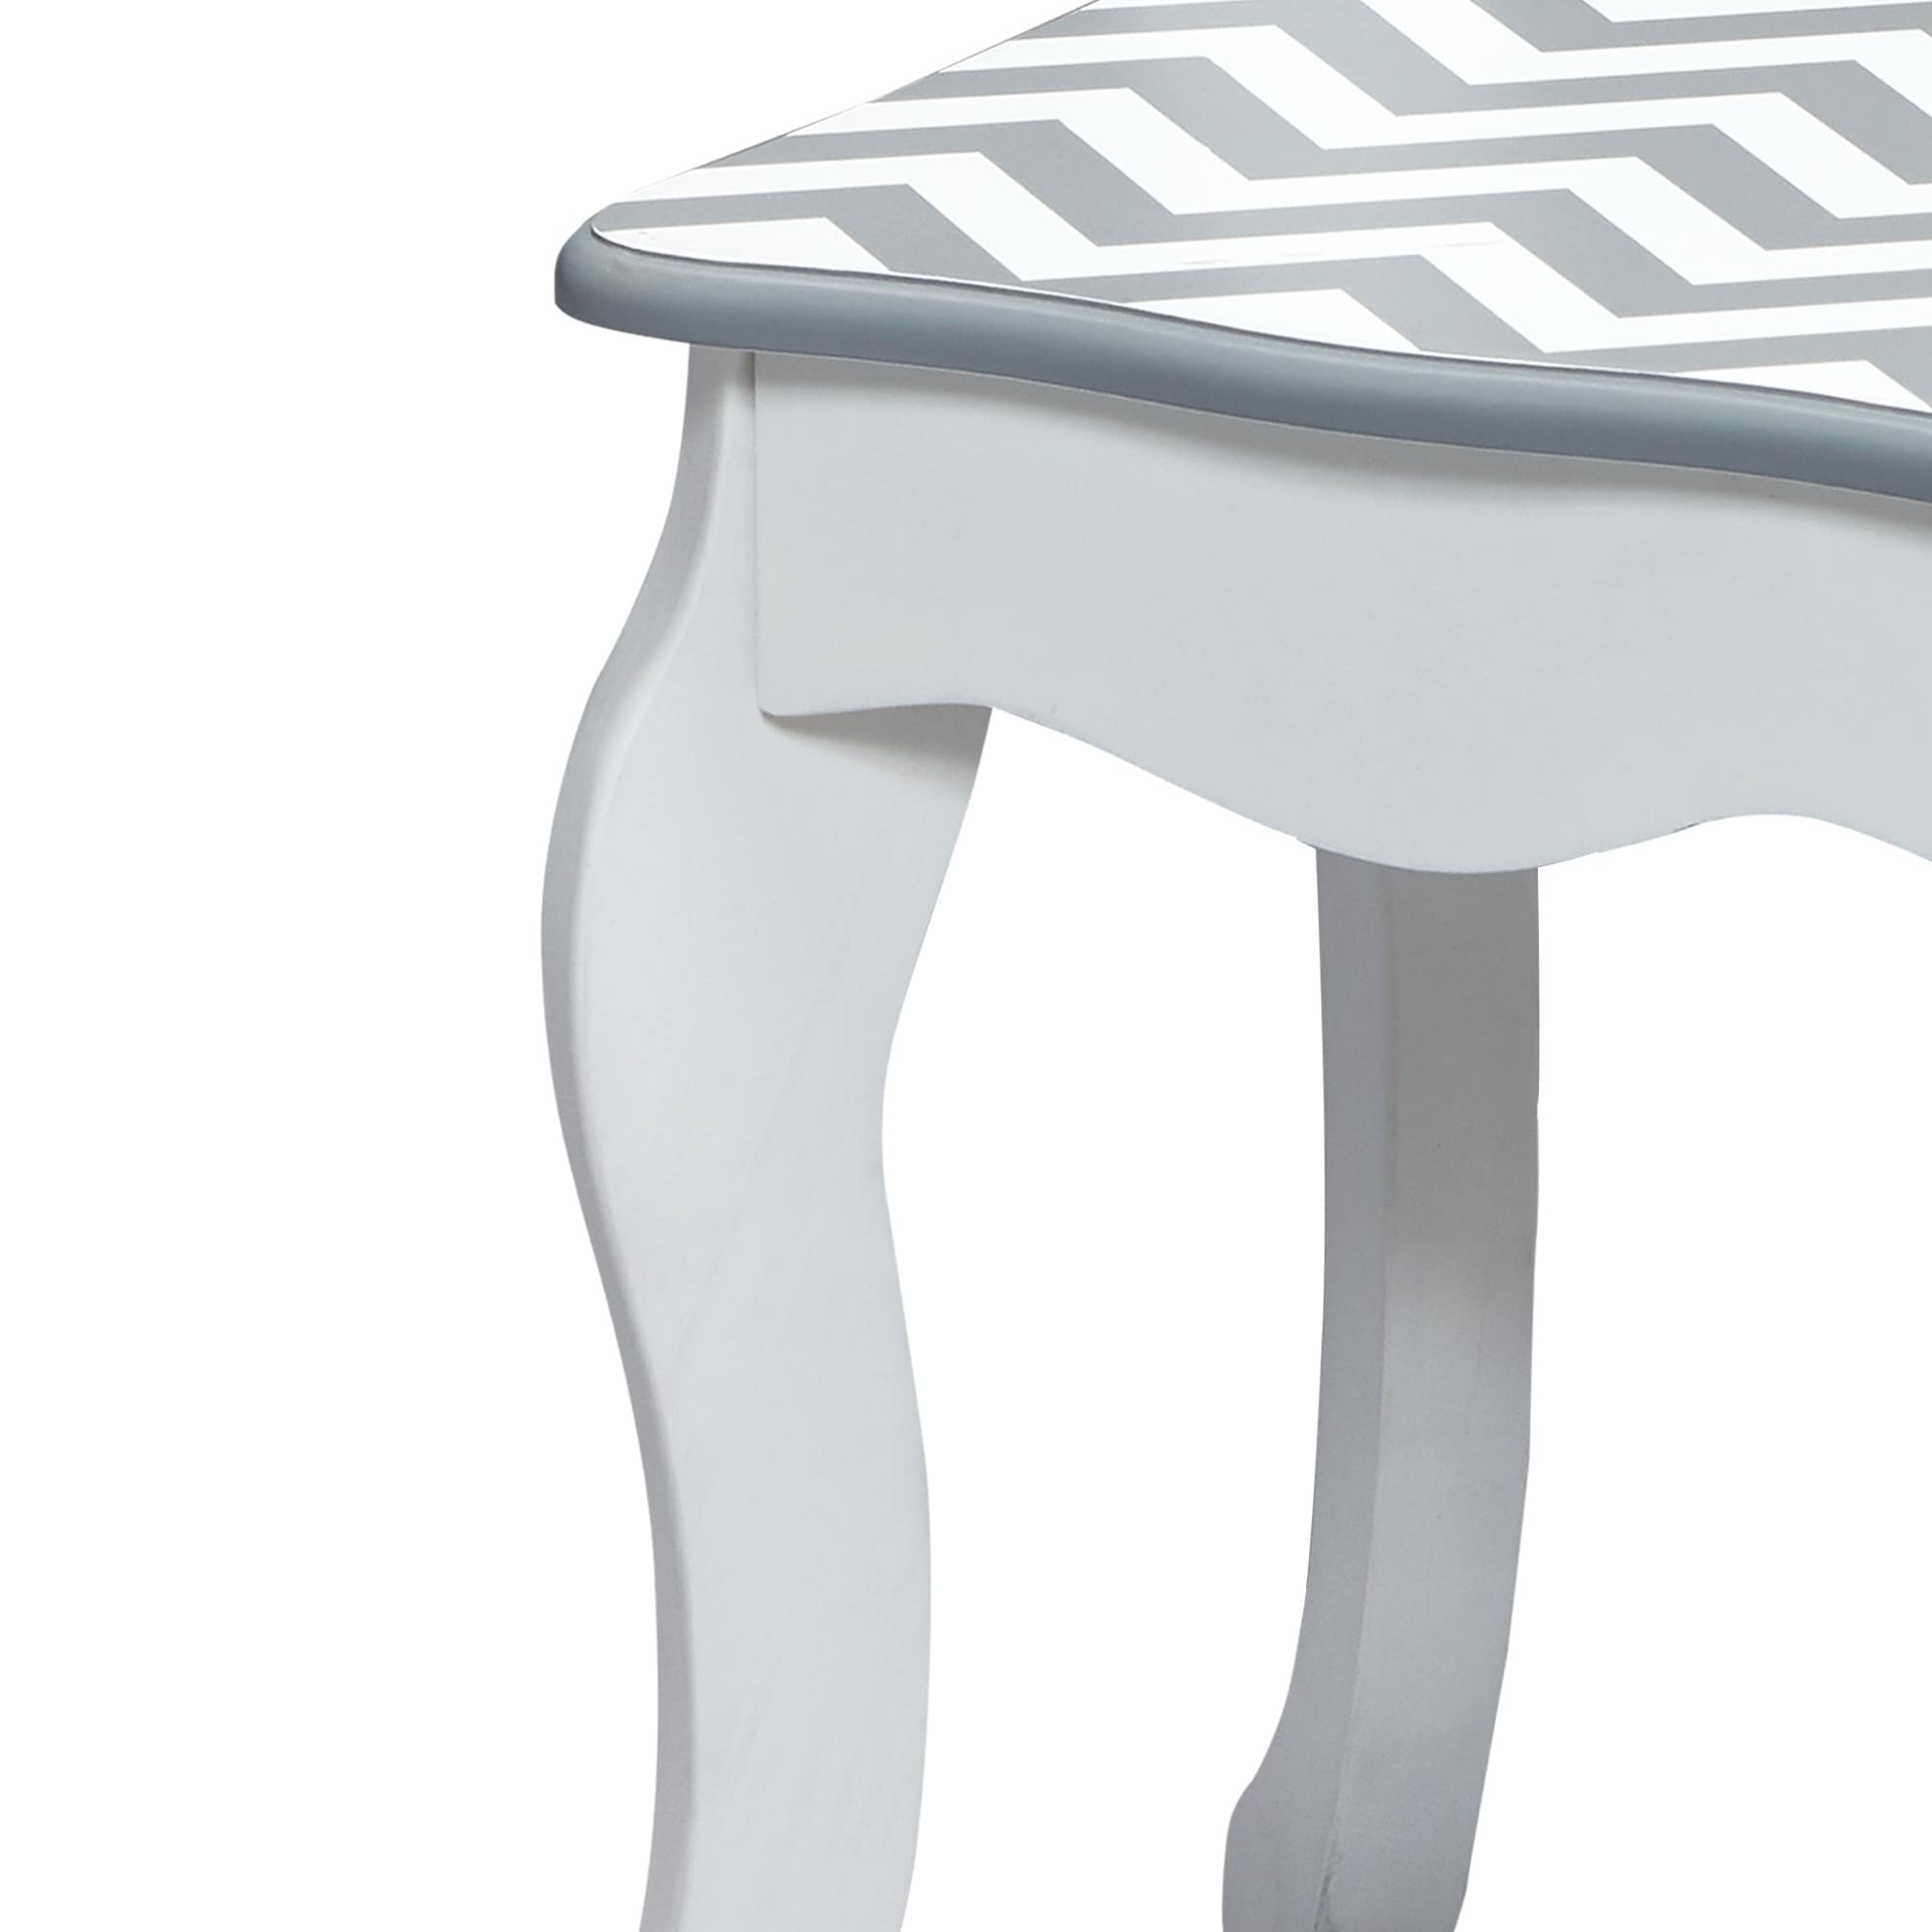 Shop Teamson Kids - Fashion Prints Vanity Table   Stool Set - Grey Chevron  - Free Shipping Today - Overstock - 17136459 5f1127833